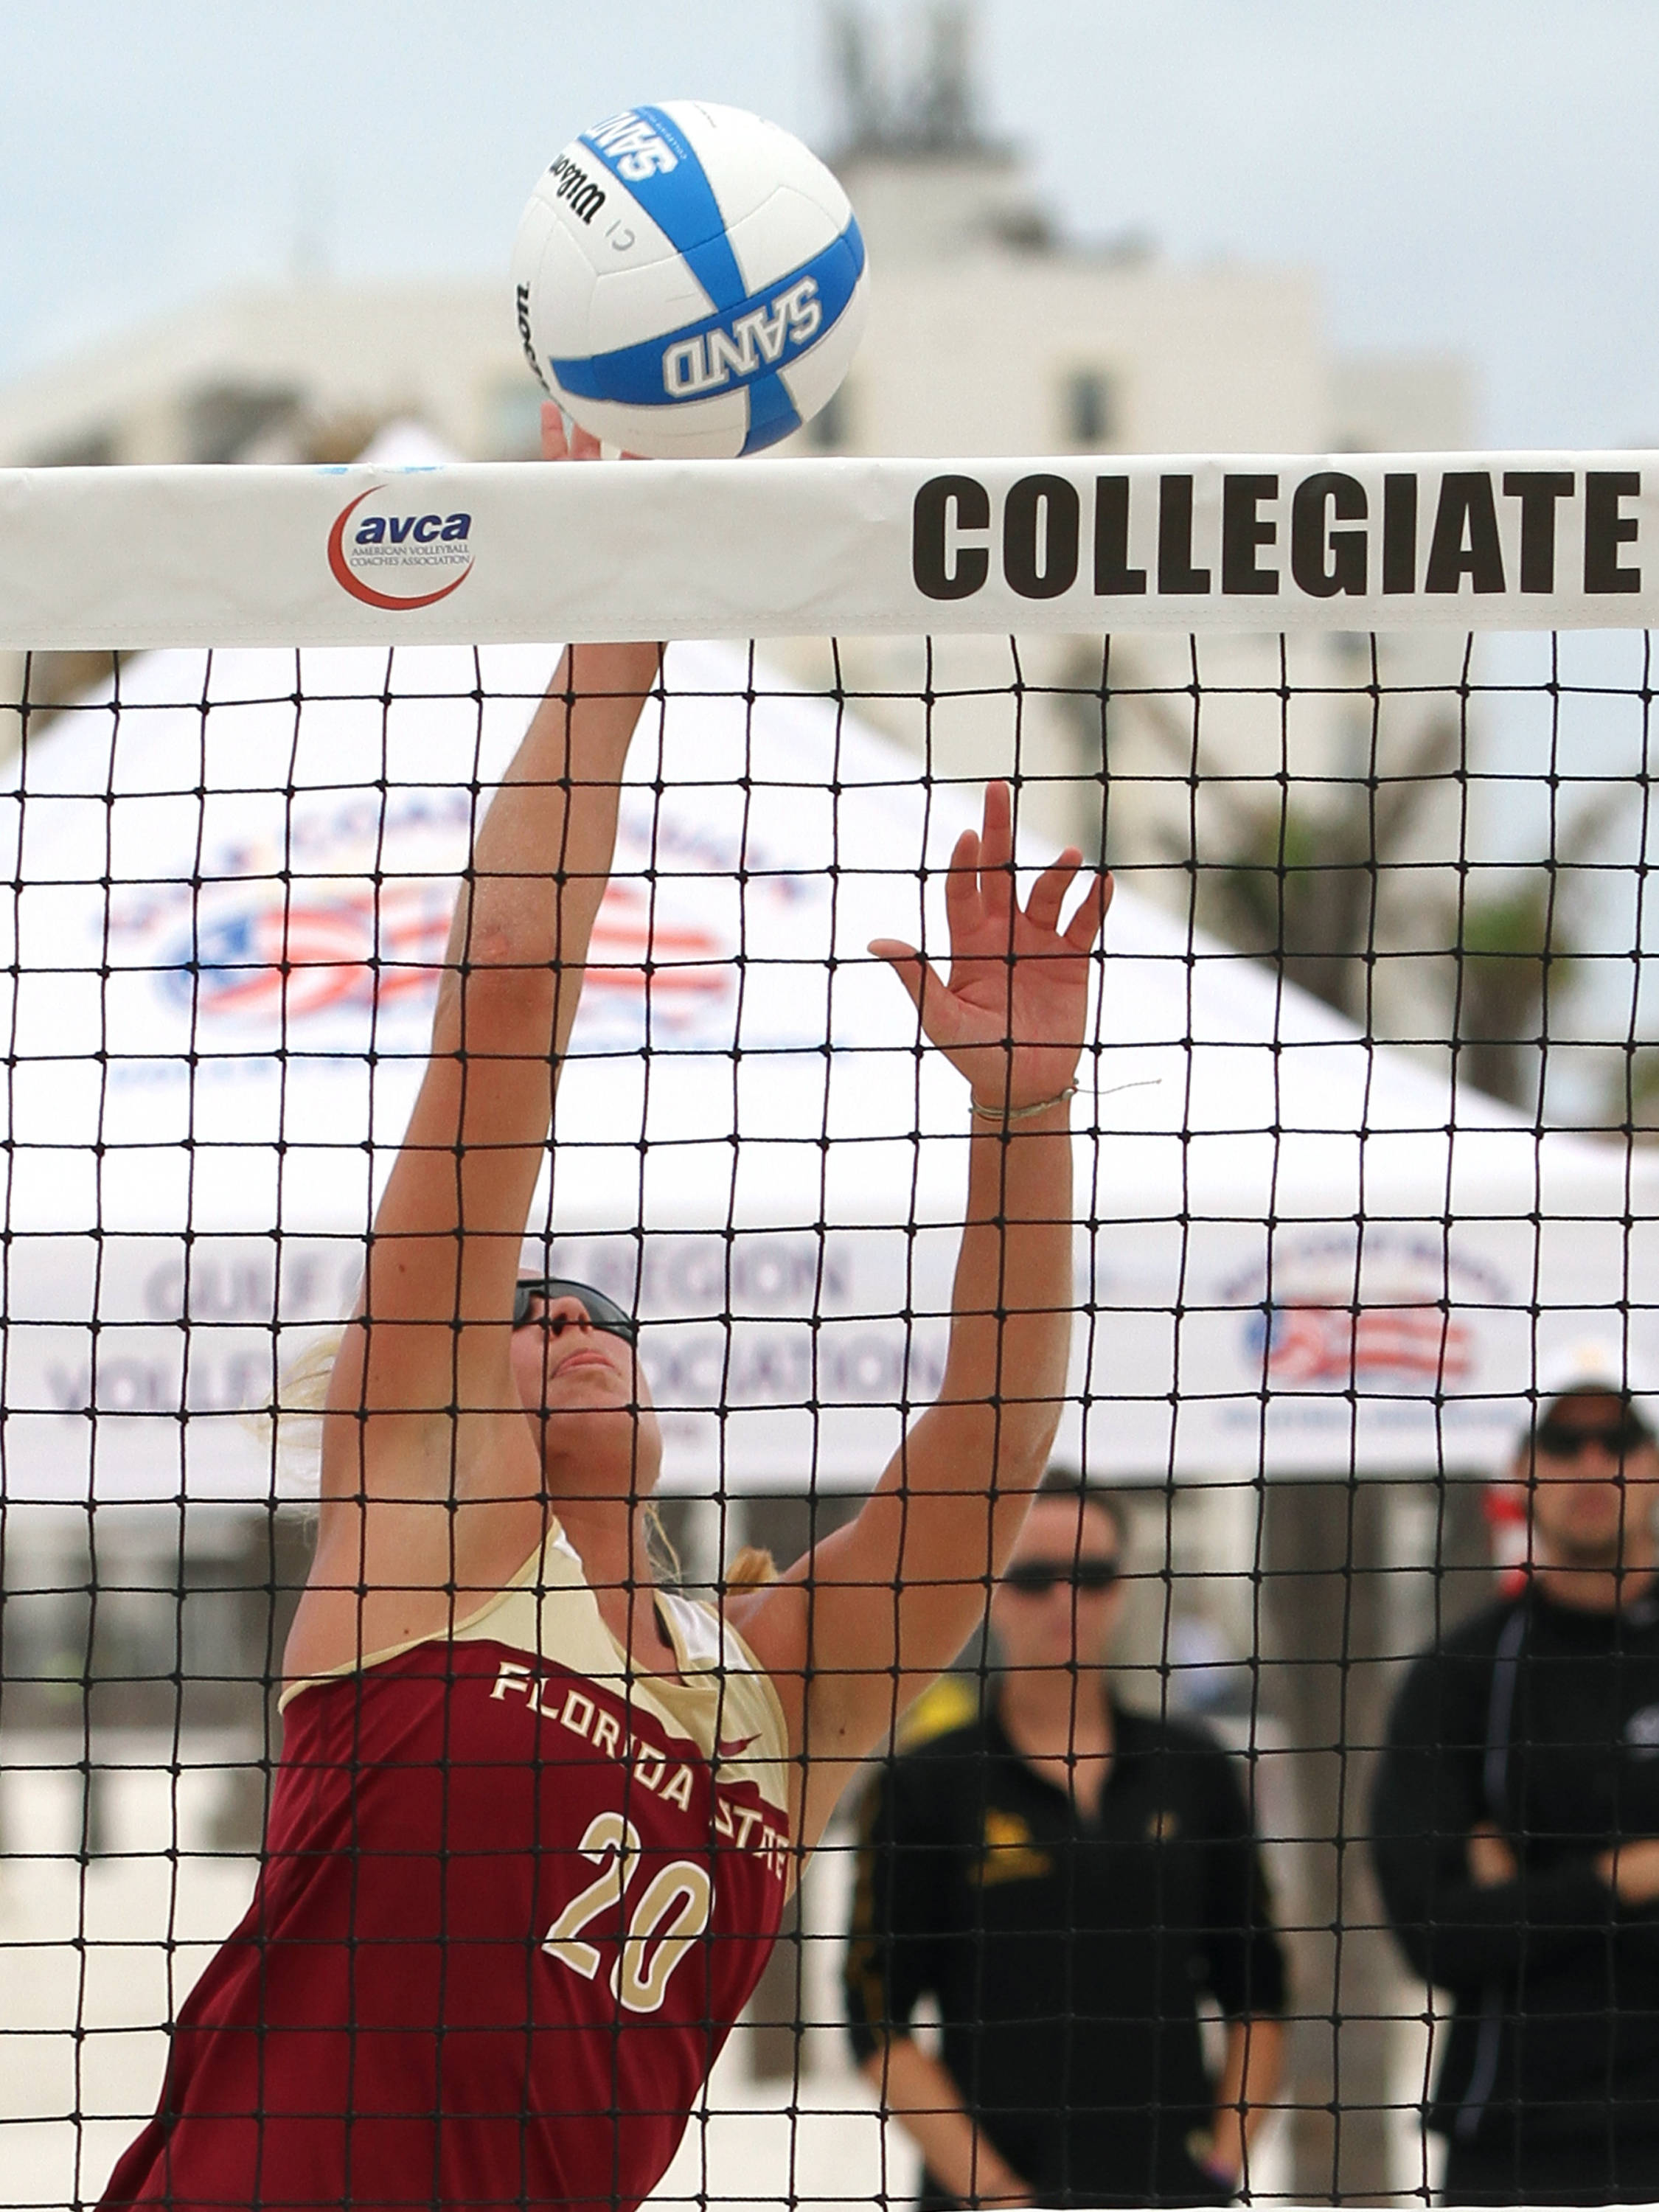 Srah Wickstrom (20), AVCA Collegiate Sand Volleyball National Championships,  Gulf Shores, Alabama,05/03/13 . (Photo by Steve Musco)